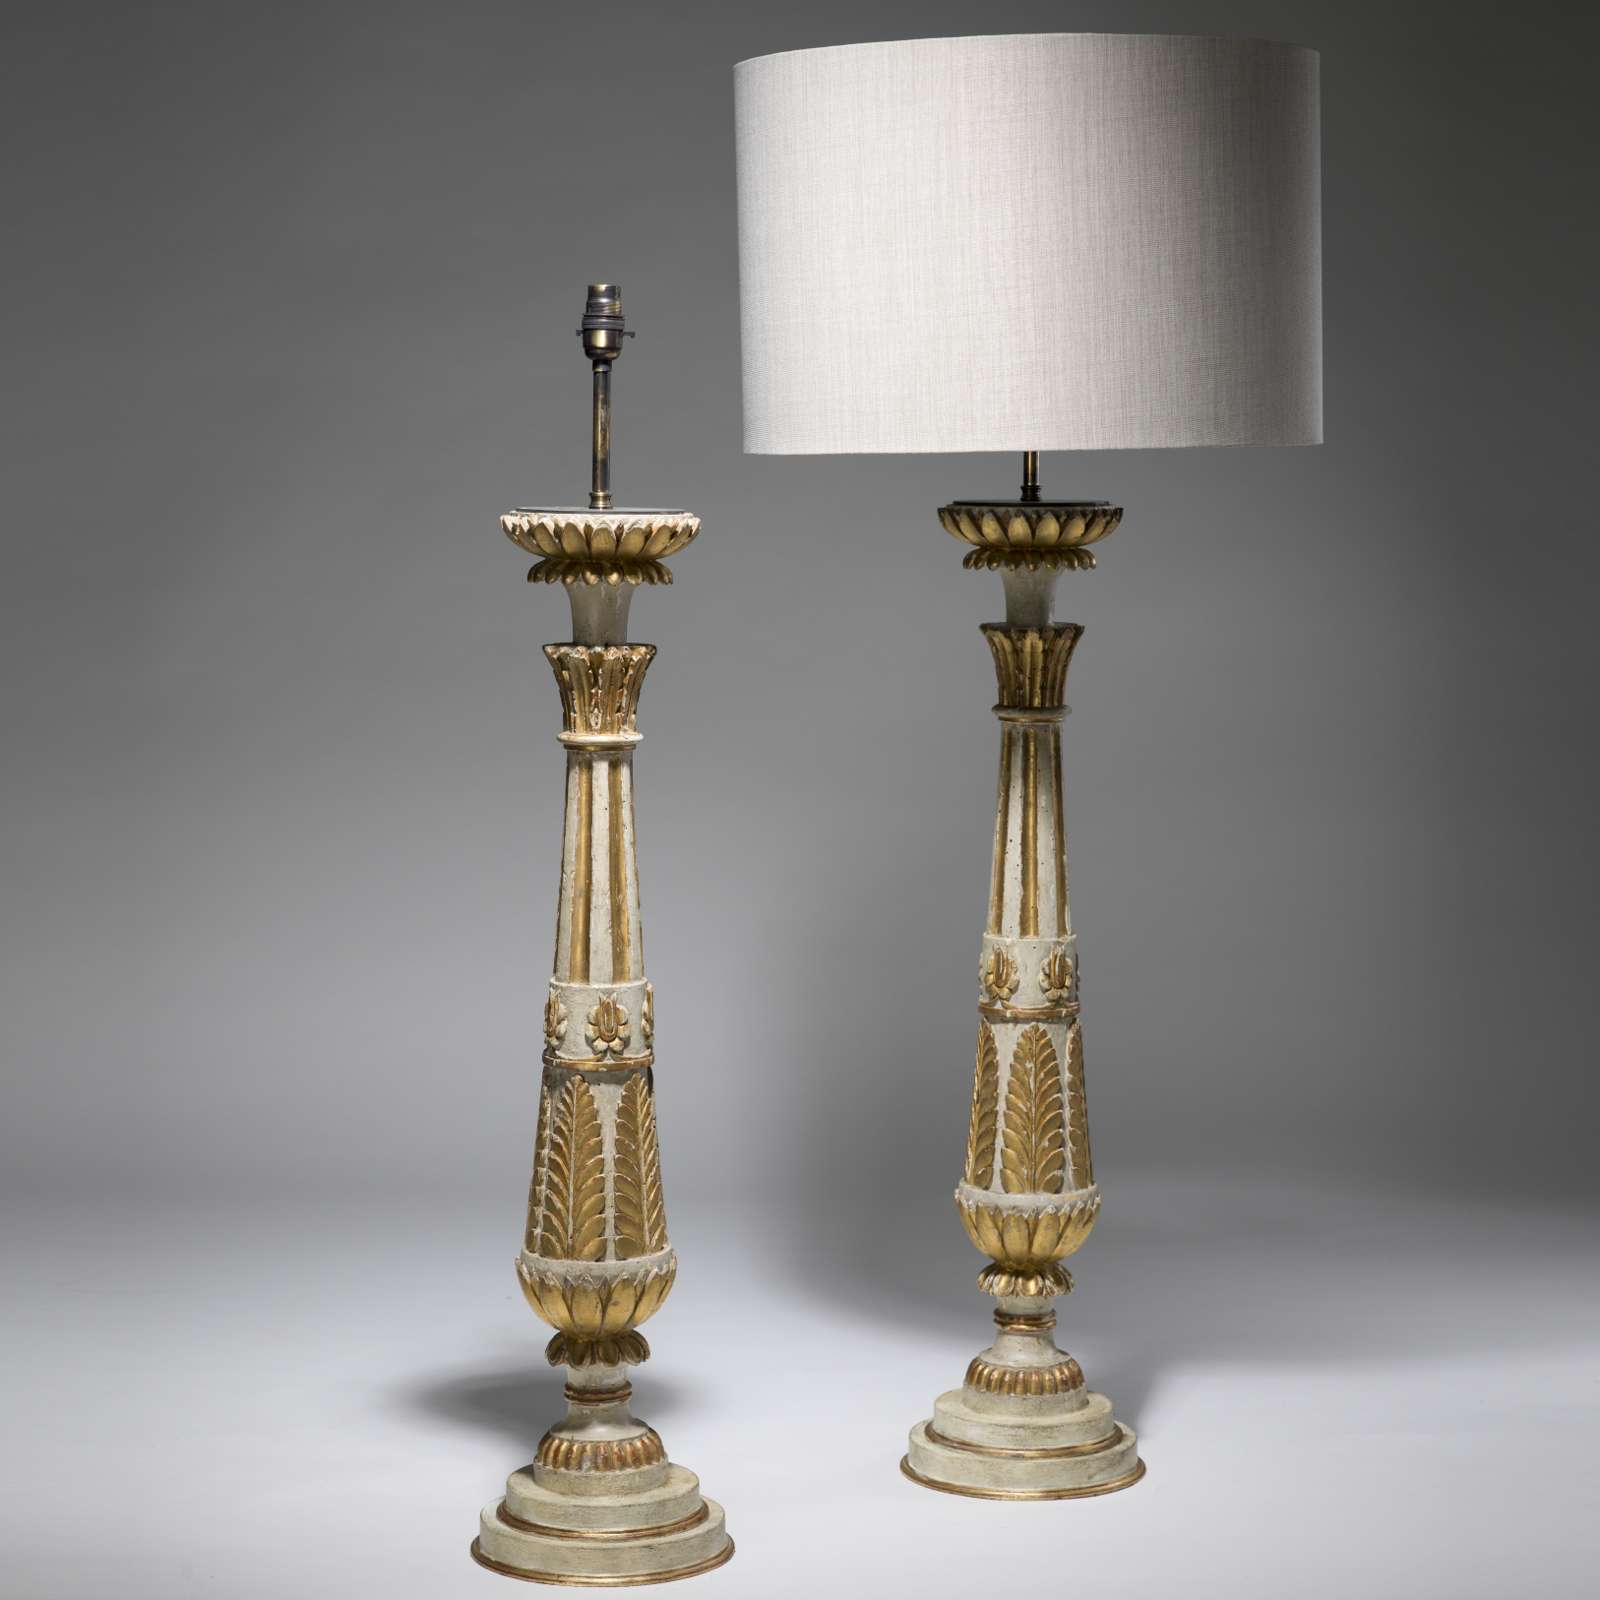 Pair of tall c1820 large antique french wooden table lamps for Vintage wooden table lamps